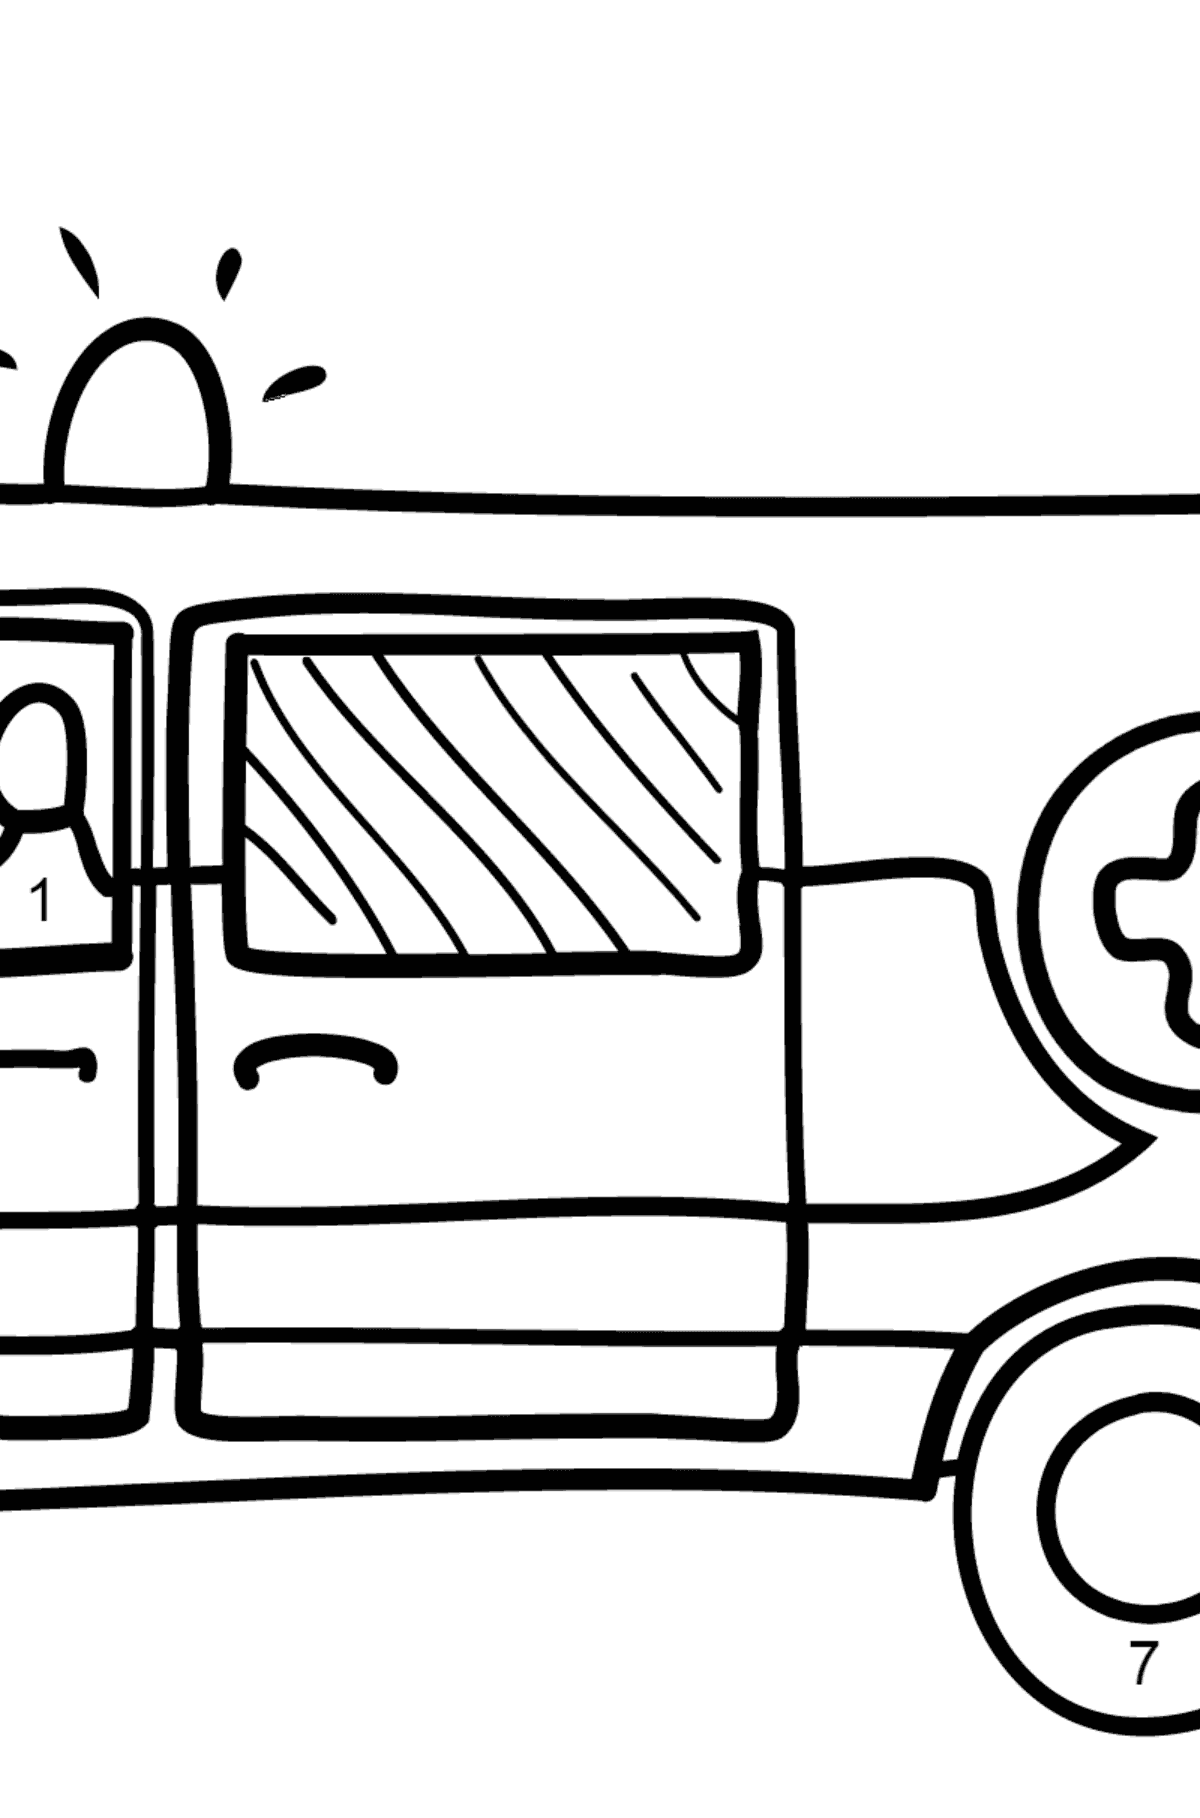 Coloring Page - An Ambulance for Kids  - Color by Number